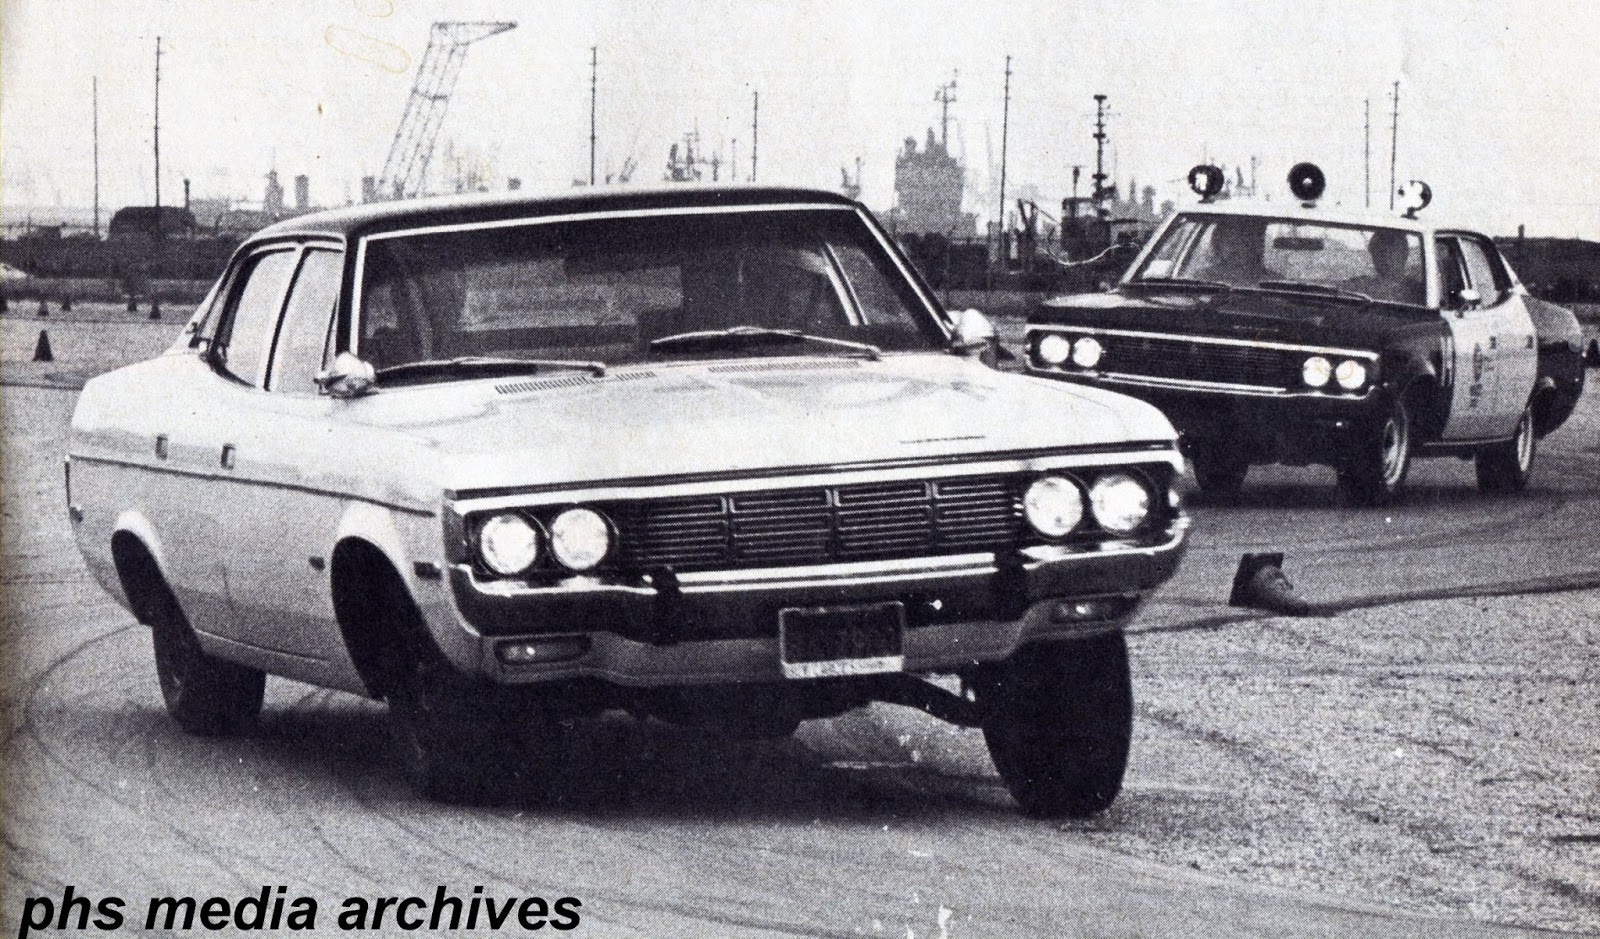 Lapd Test Runs Of A New Matador With Mopar Transmission The Change In Spec Meant Car Had To Re Qualify Which It Did Flying Colors